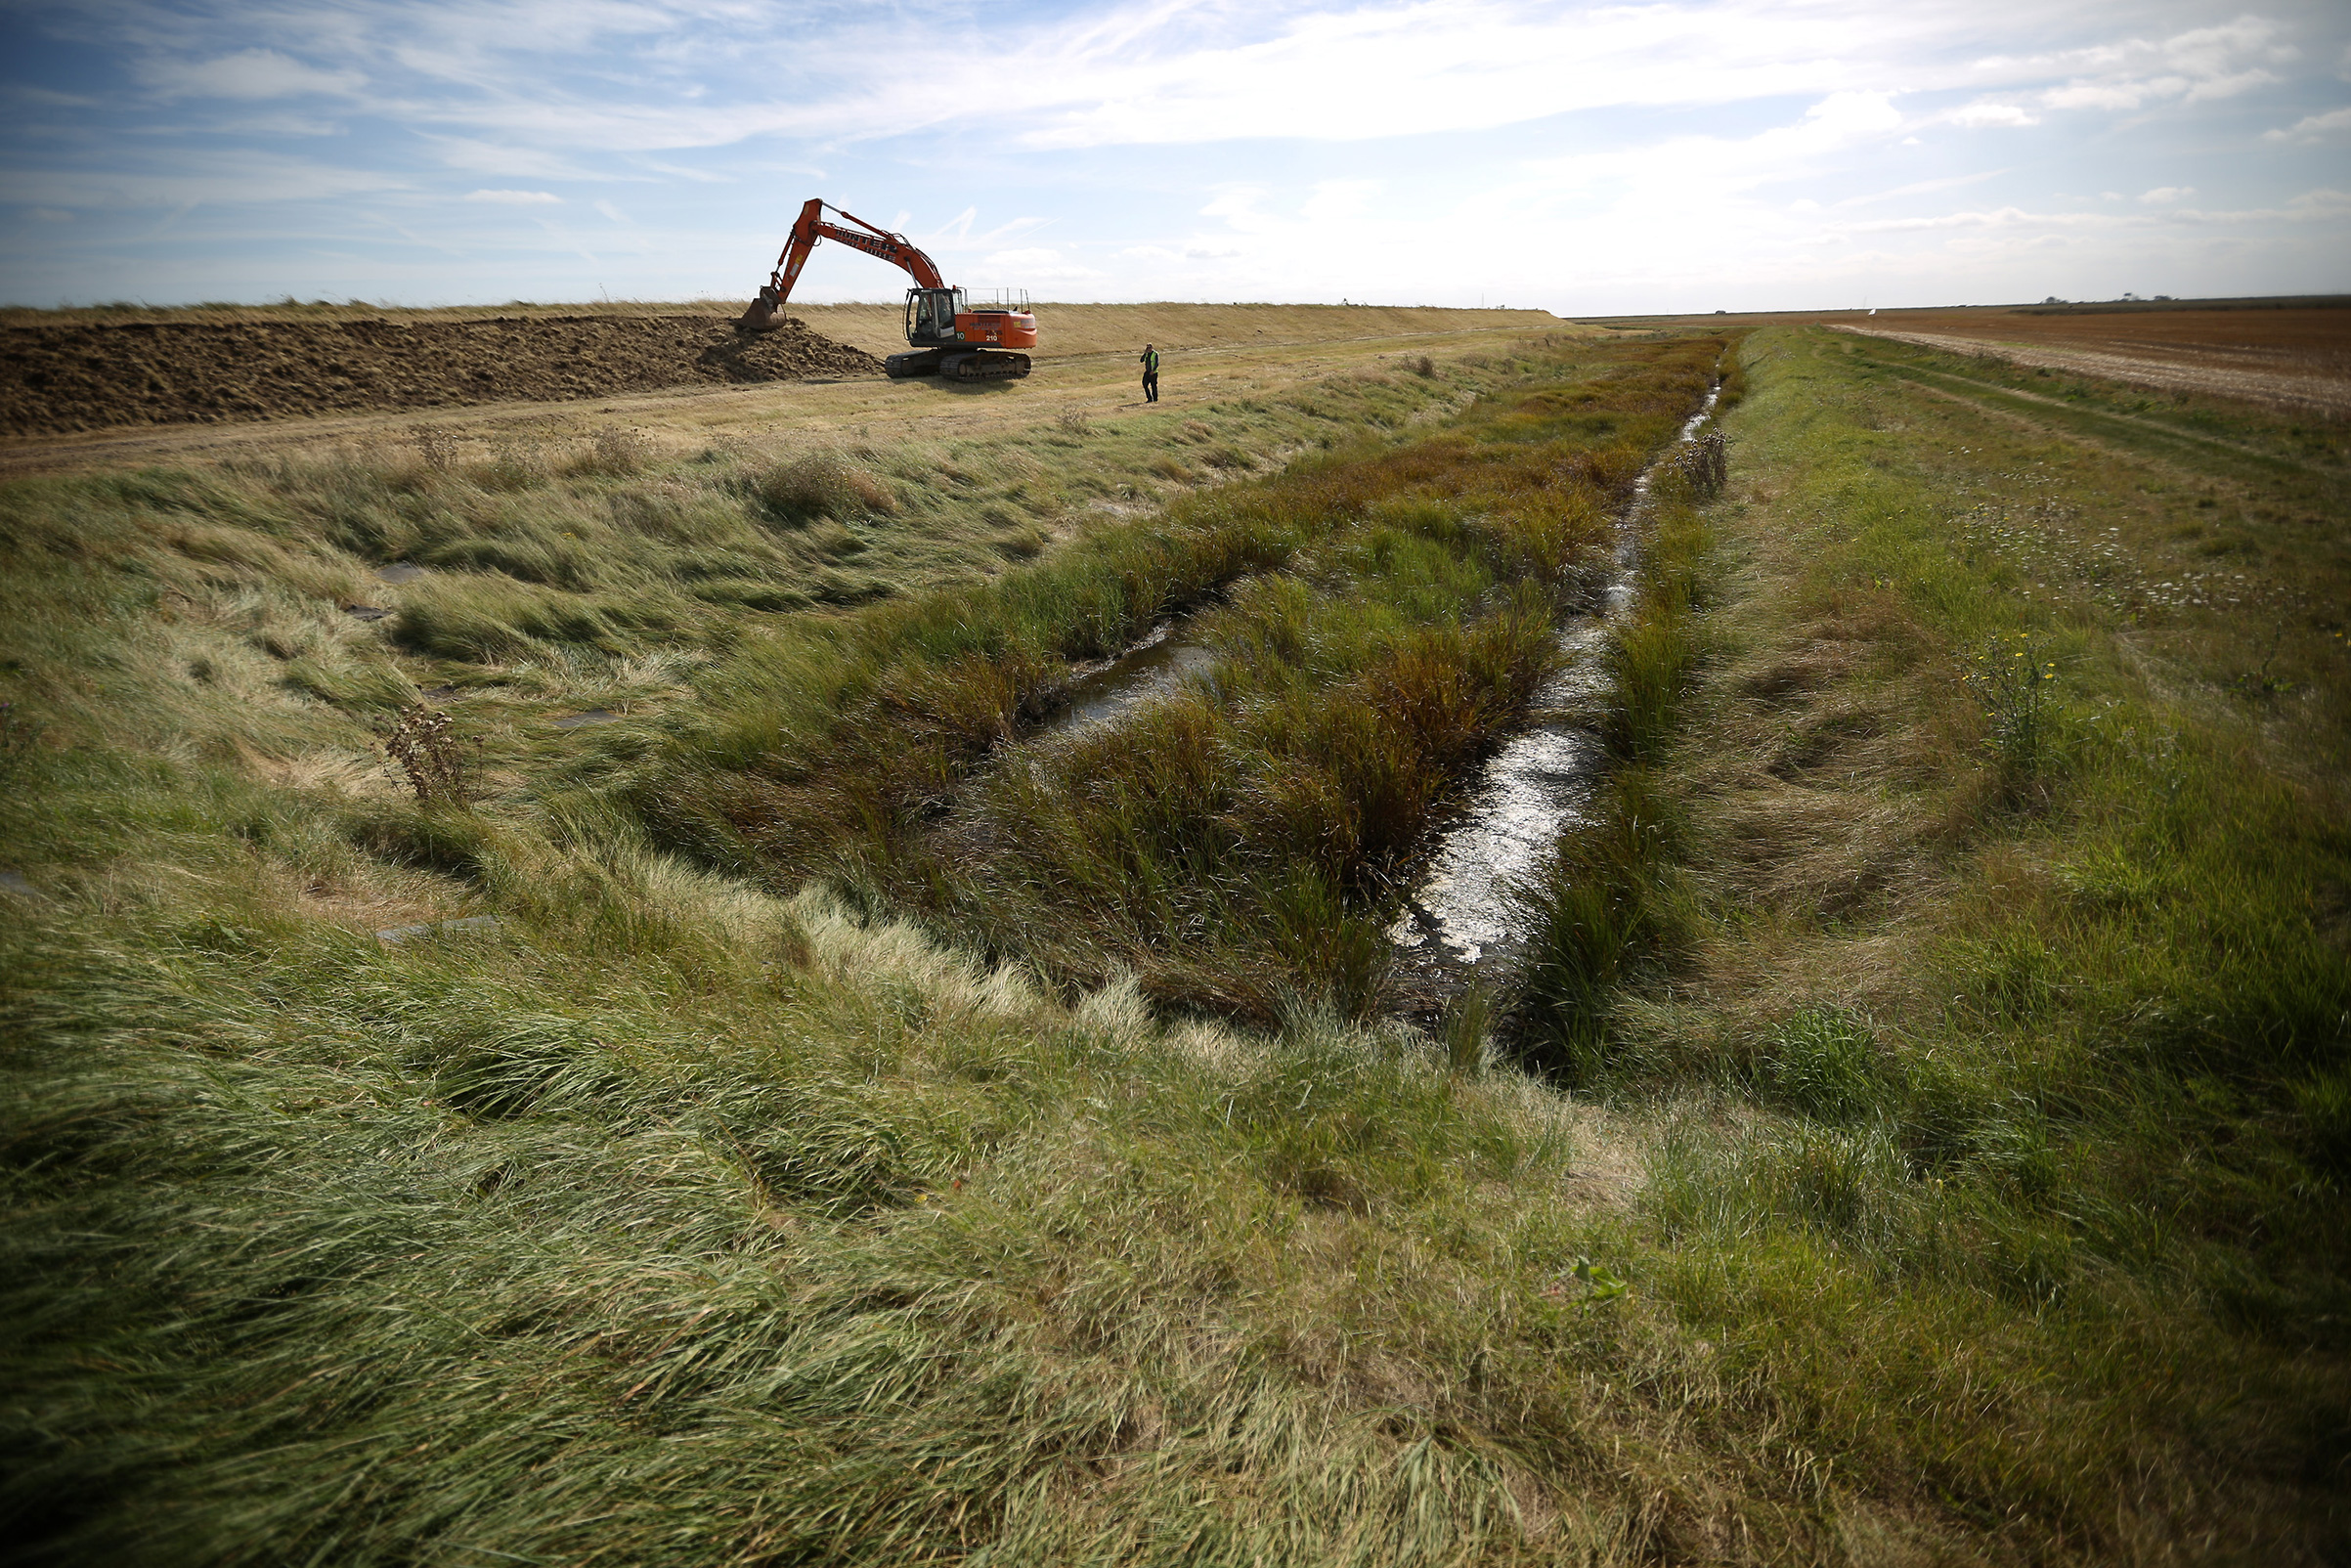 A project to build a network of salt marshes, grasslands and lagoons on Wallasea Island on England's eastern coast is due for completion in October